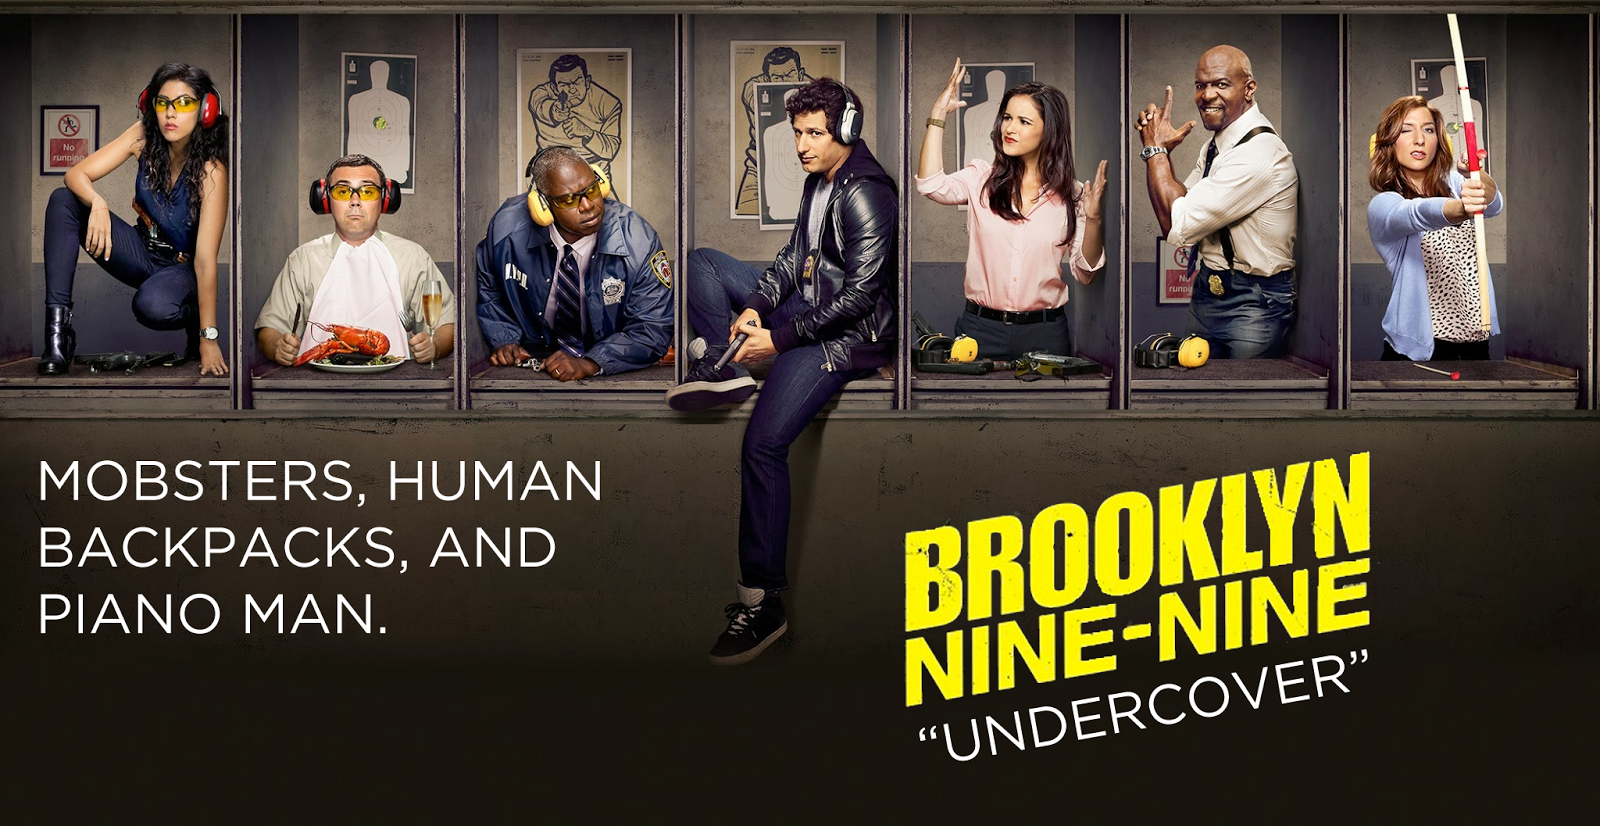 Brooklyn Nine-Nine - Episode 2.01 - Undercover - Review